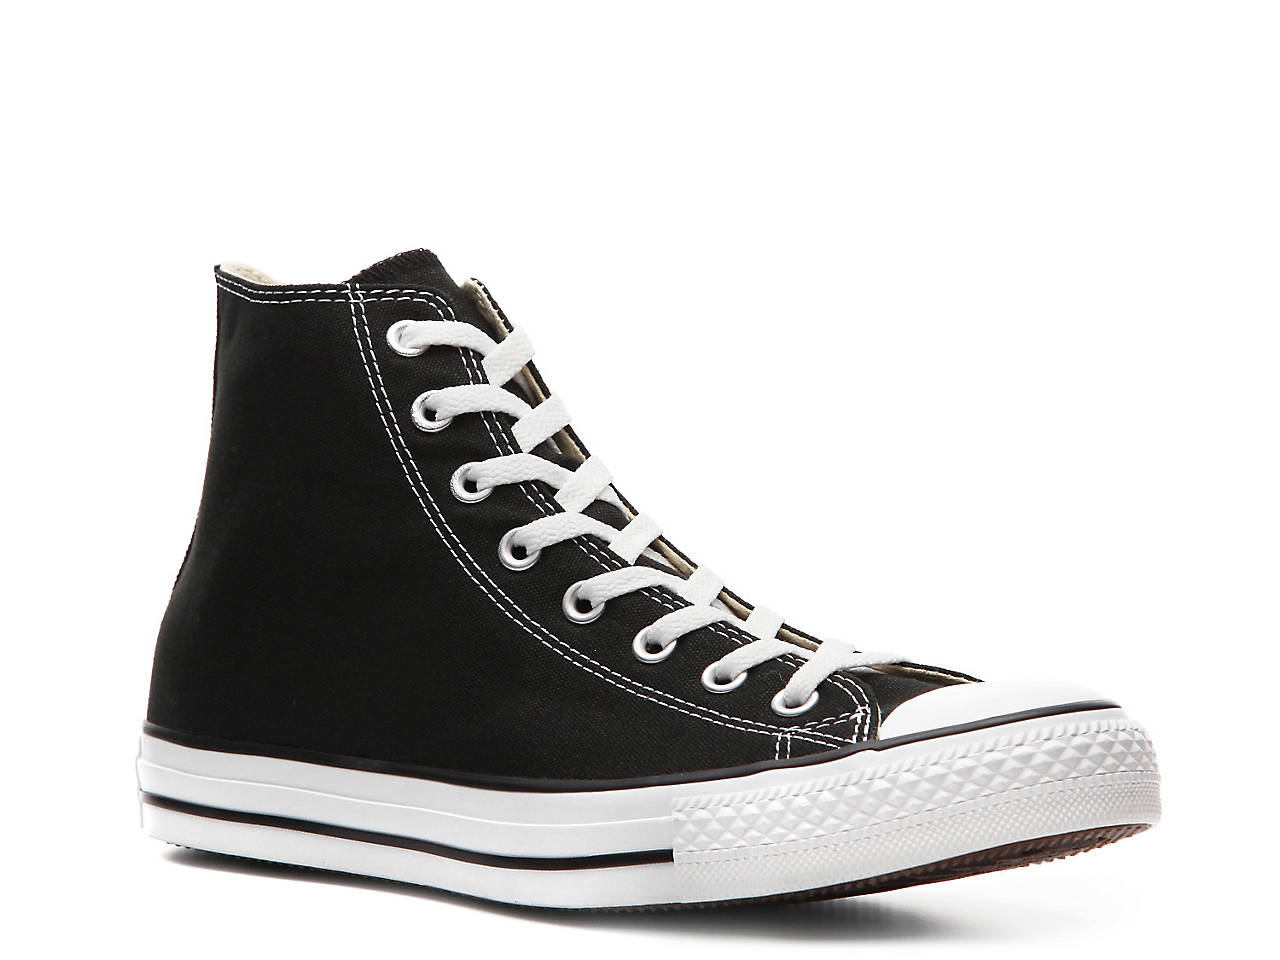 dabf5c1de0c6 Converse Chuck Taylor All Star High-Top Sneaker - Men s Men s Shoes ...